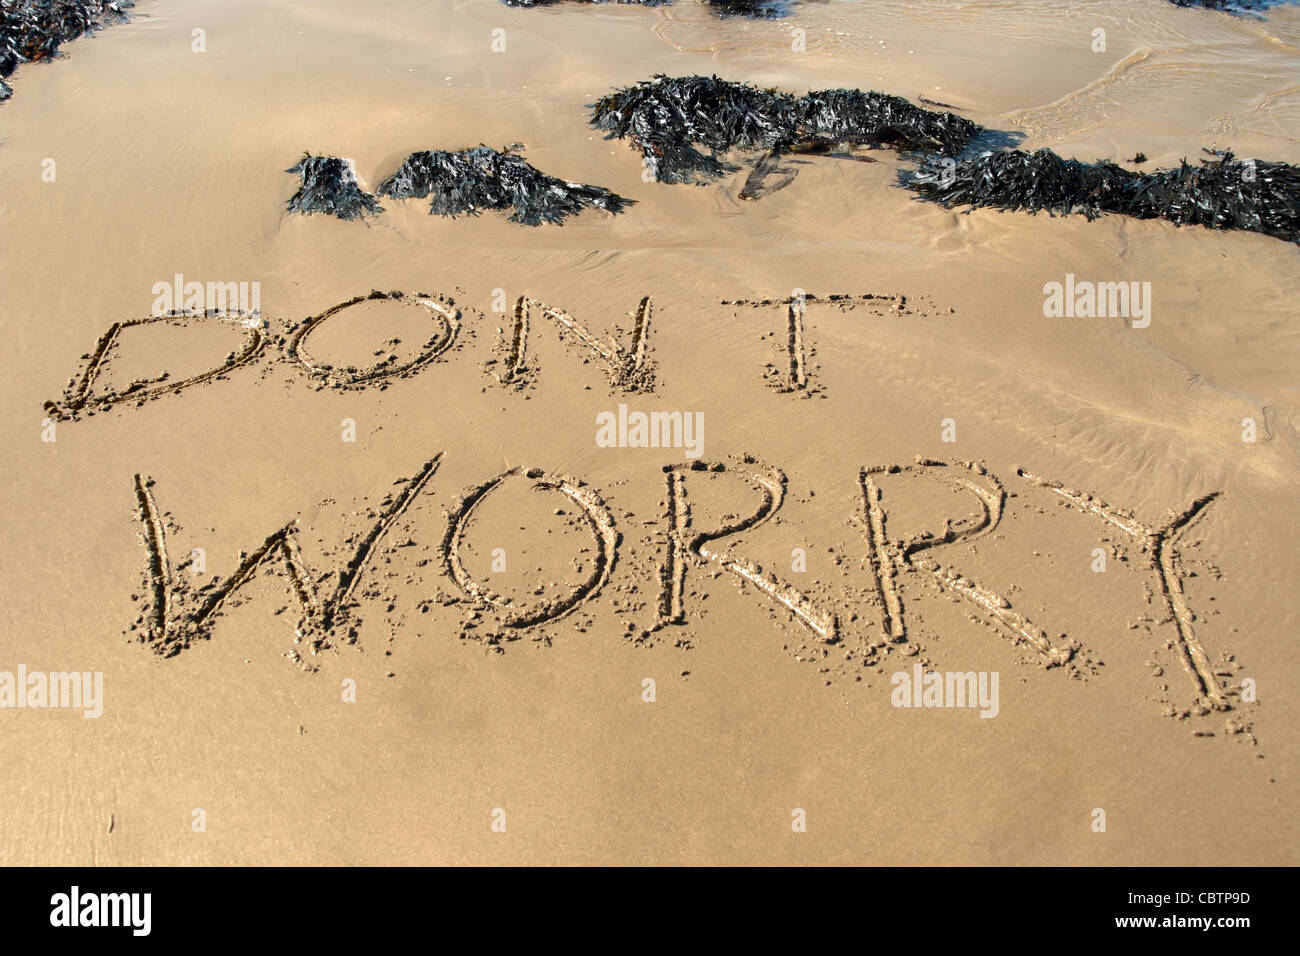 dont worry inscribed on the beach with waves in the background on a hot sunny day - Stock Image